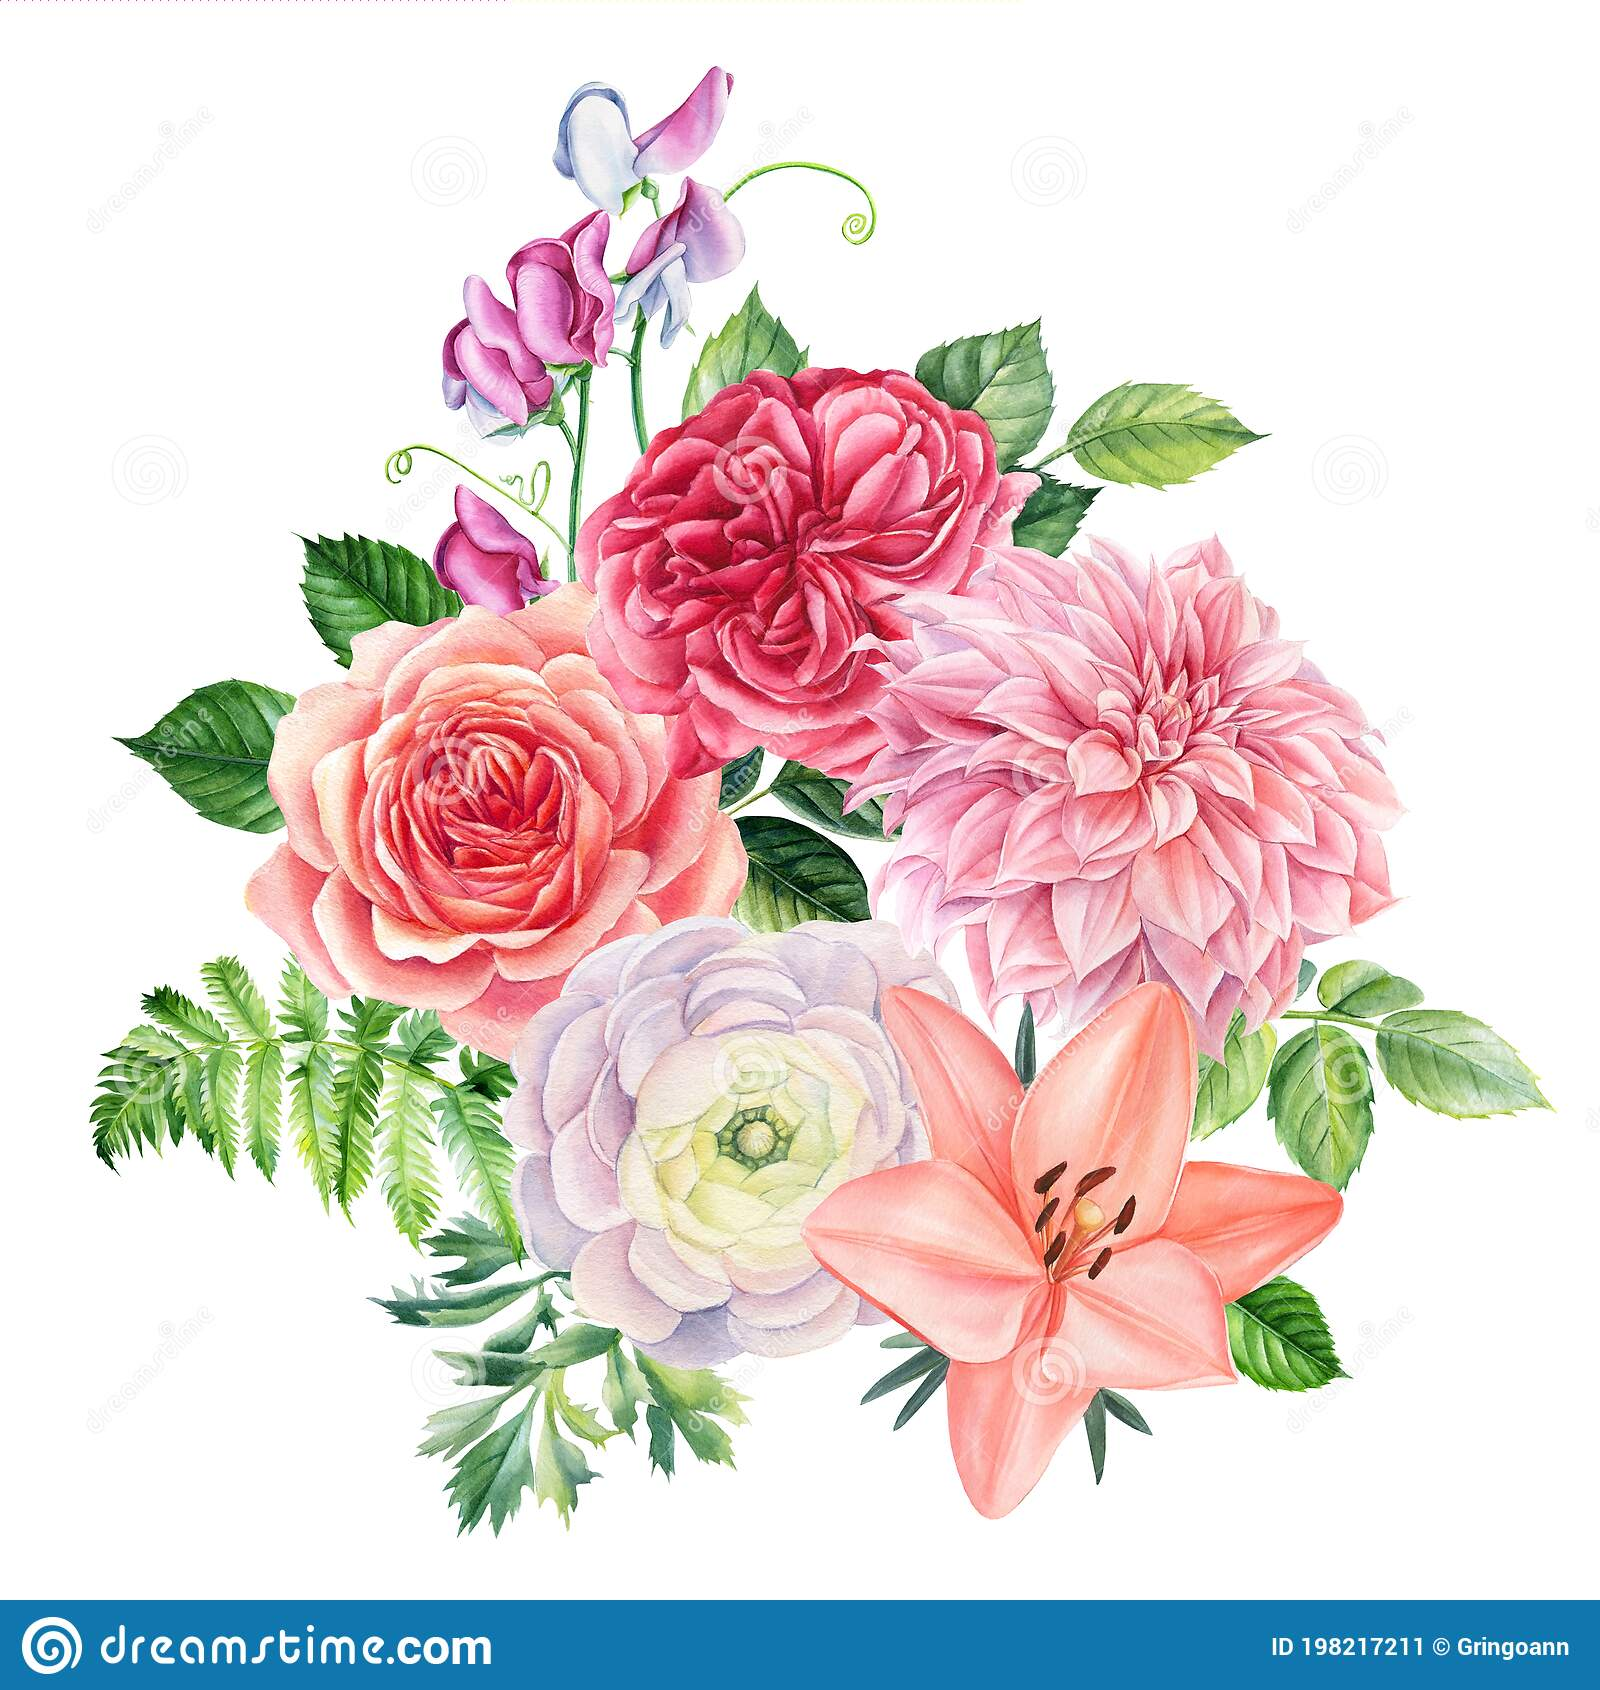 Drawings Roses Stock Illustrations 491 Drawings Roses Stock Illustrations Vectors Clipart Dreamstime